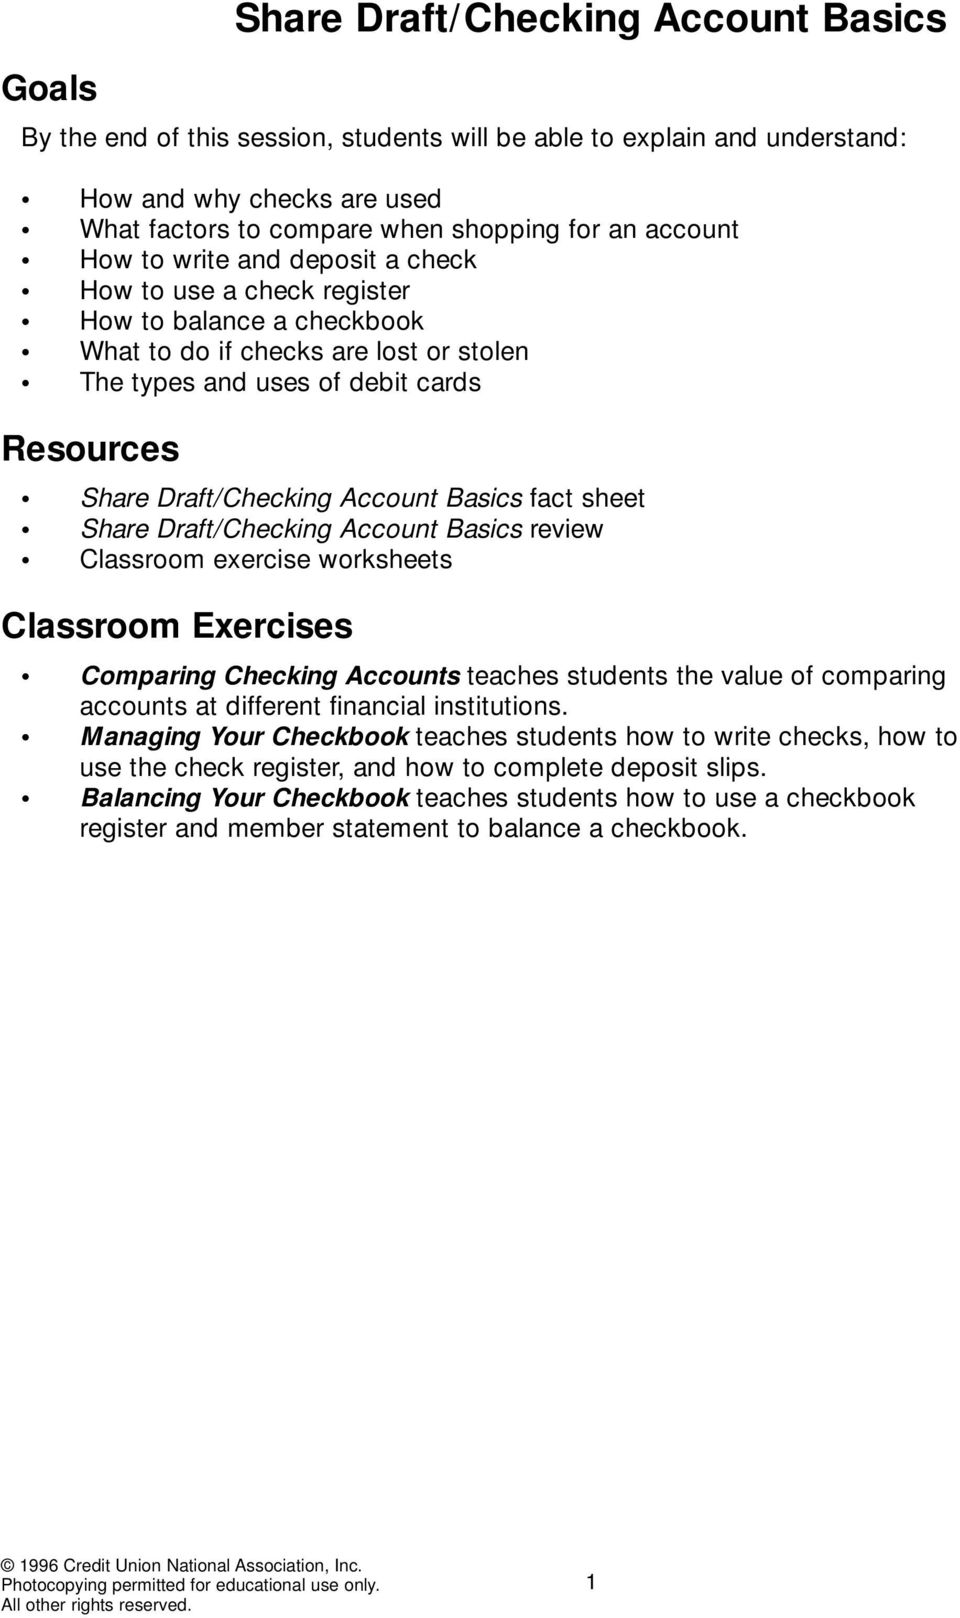 Worksheets How To Balance A Checkbook Worksheets share draftchecking account basics pdf fact sheet review classroom exercise worksheets exercises